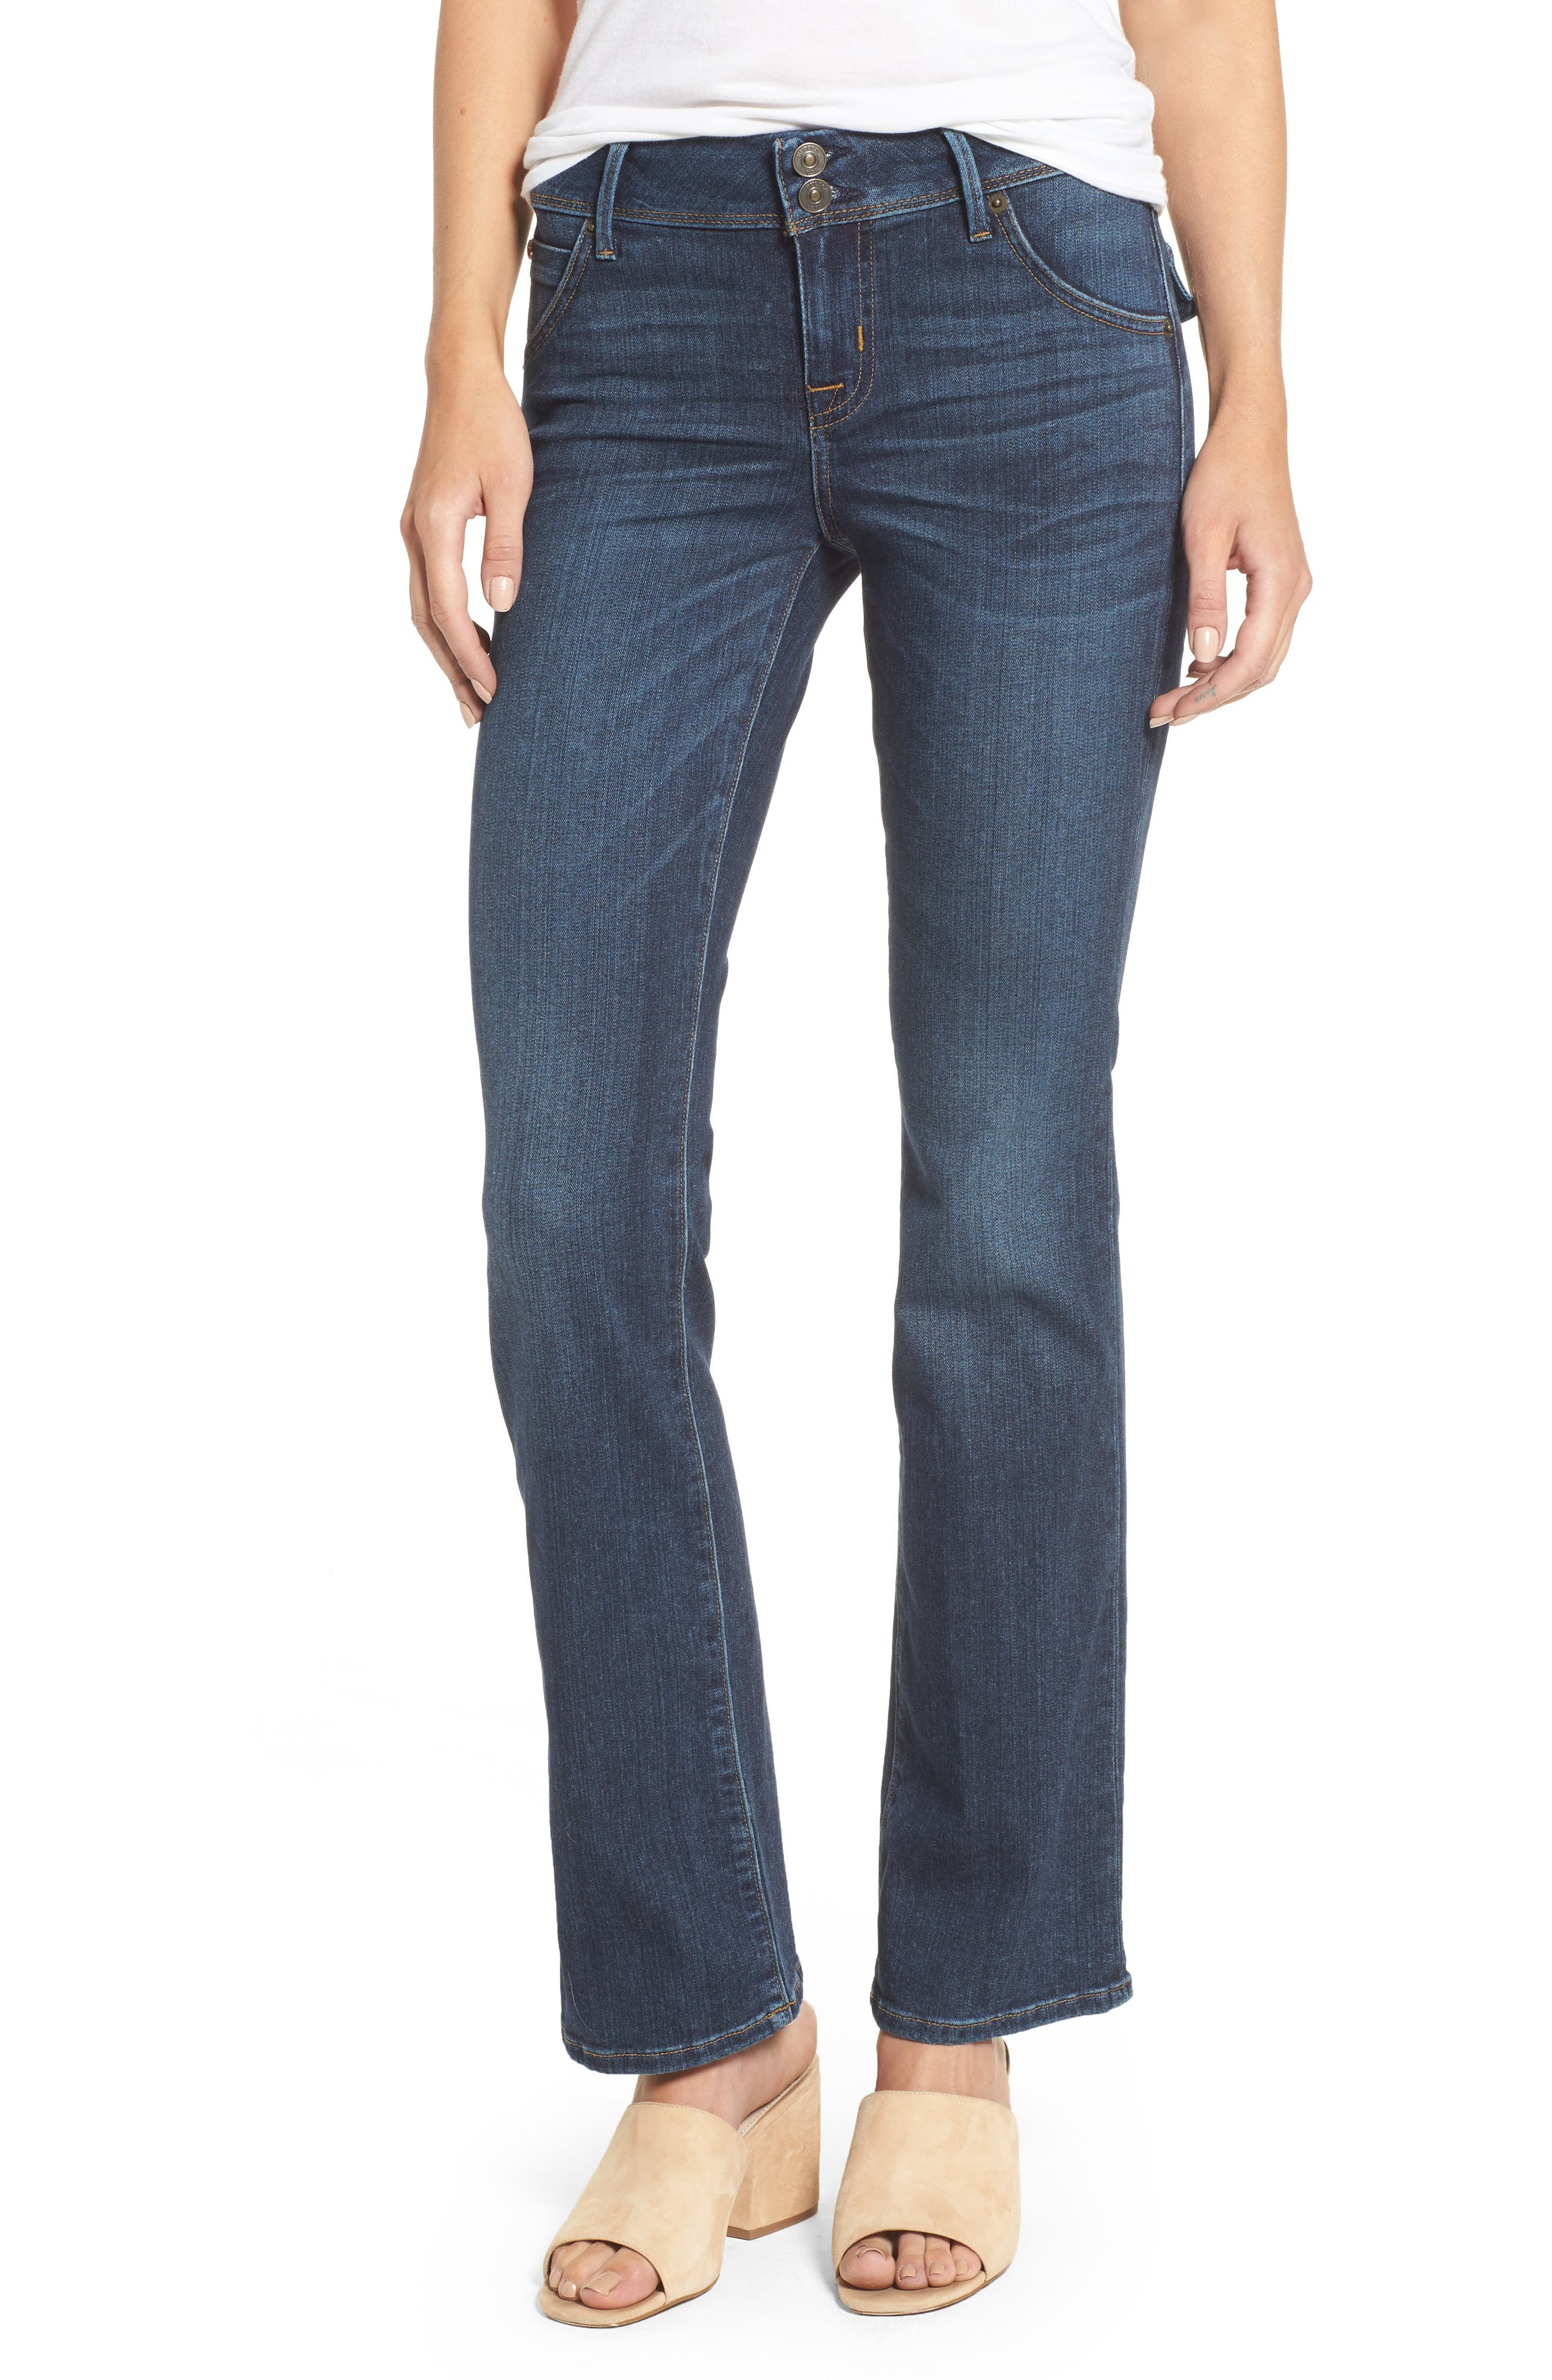 Beth Baby Bootcut Jeans,                             Main thumbnail 1, color,                             422